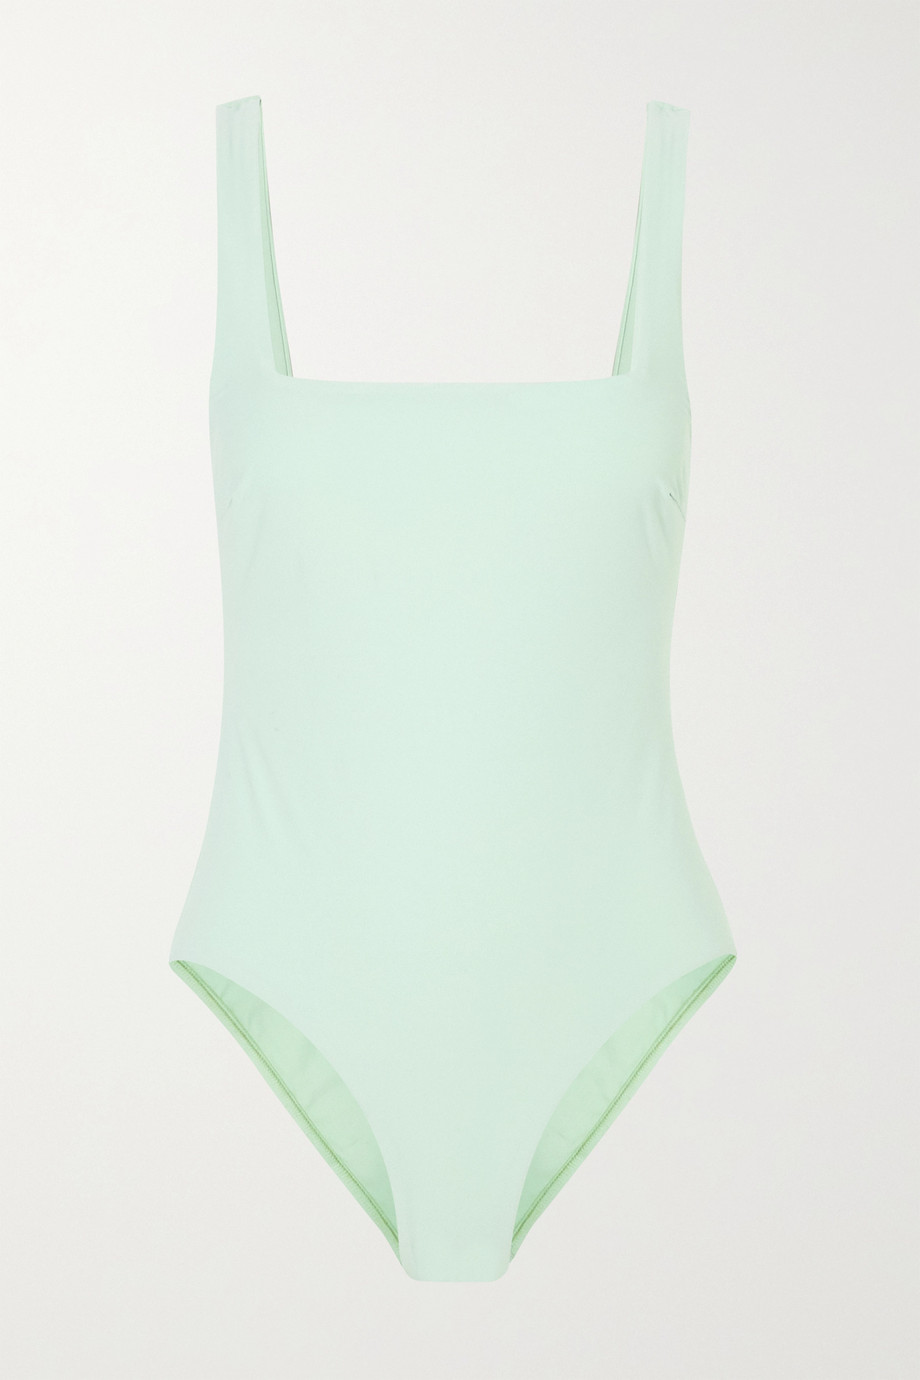 BONDI BORN + NET SUSTAIN x LG Electronics Margot swimsuit